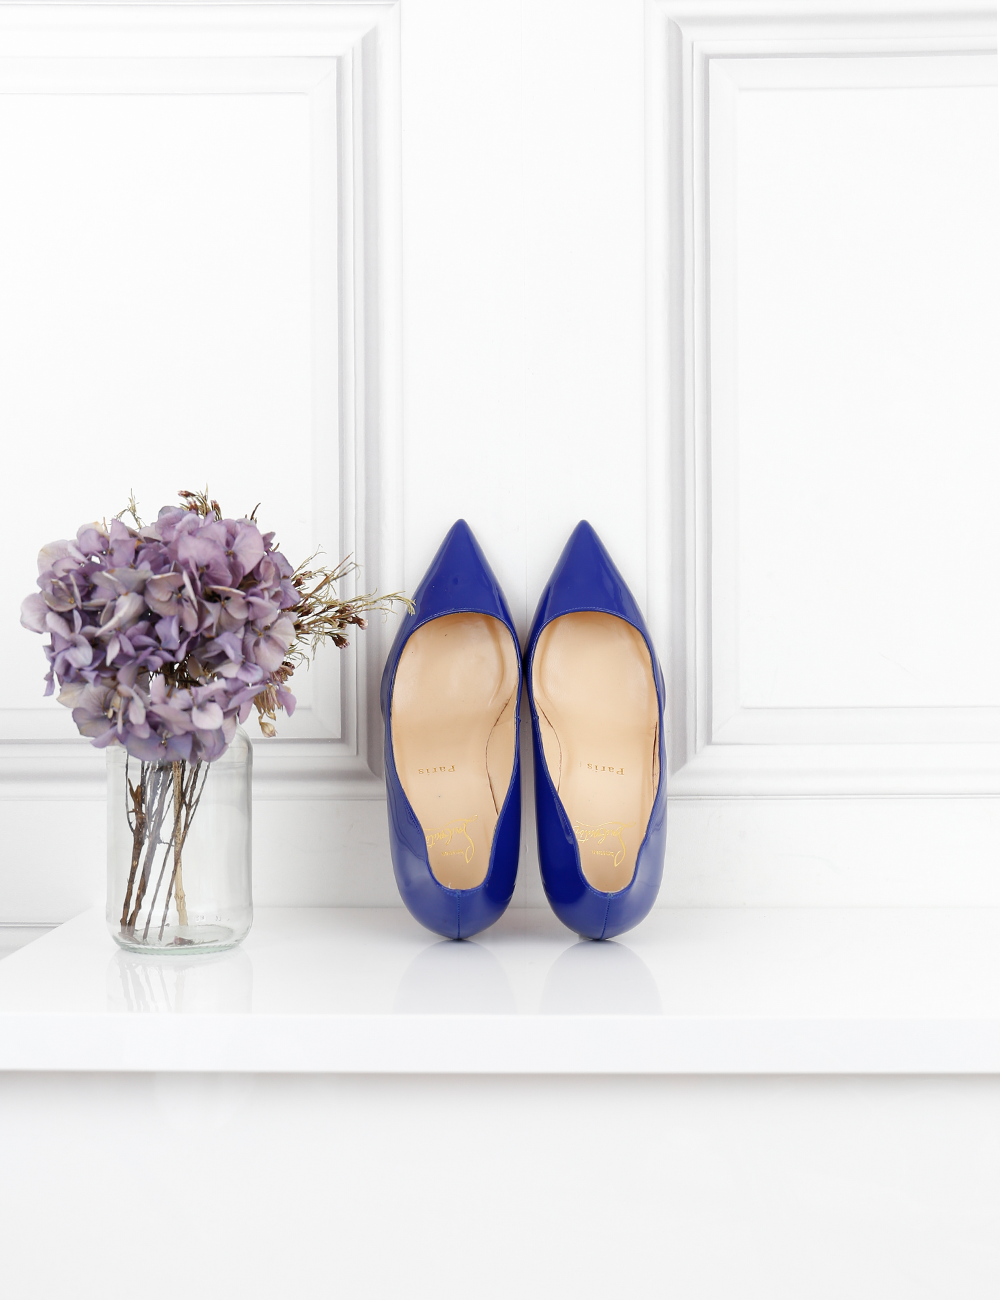 LOUBOUTIN SHOES electric blue Pigalle 85 heel pumps 4UK- My Wardrobe Mistakes